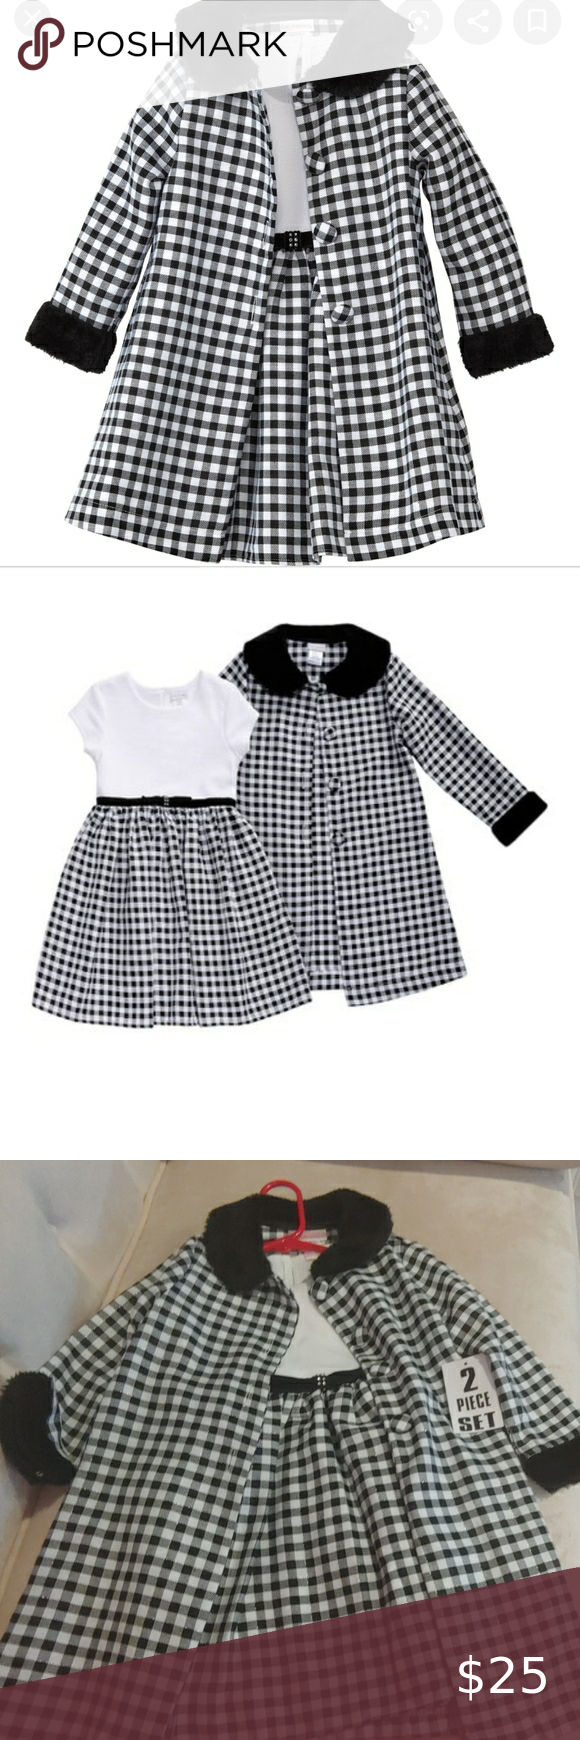 NWT Youngland Dress with coat This is Brand new dress with a very cute top coat. Perfect together or separate! Youngland Dresses Formal